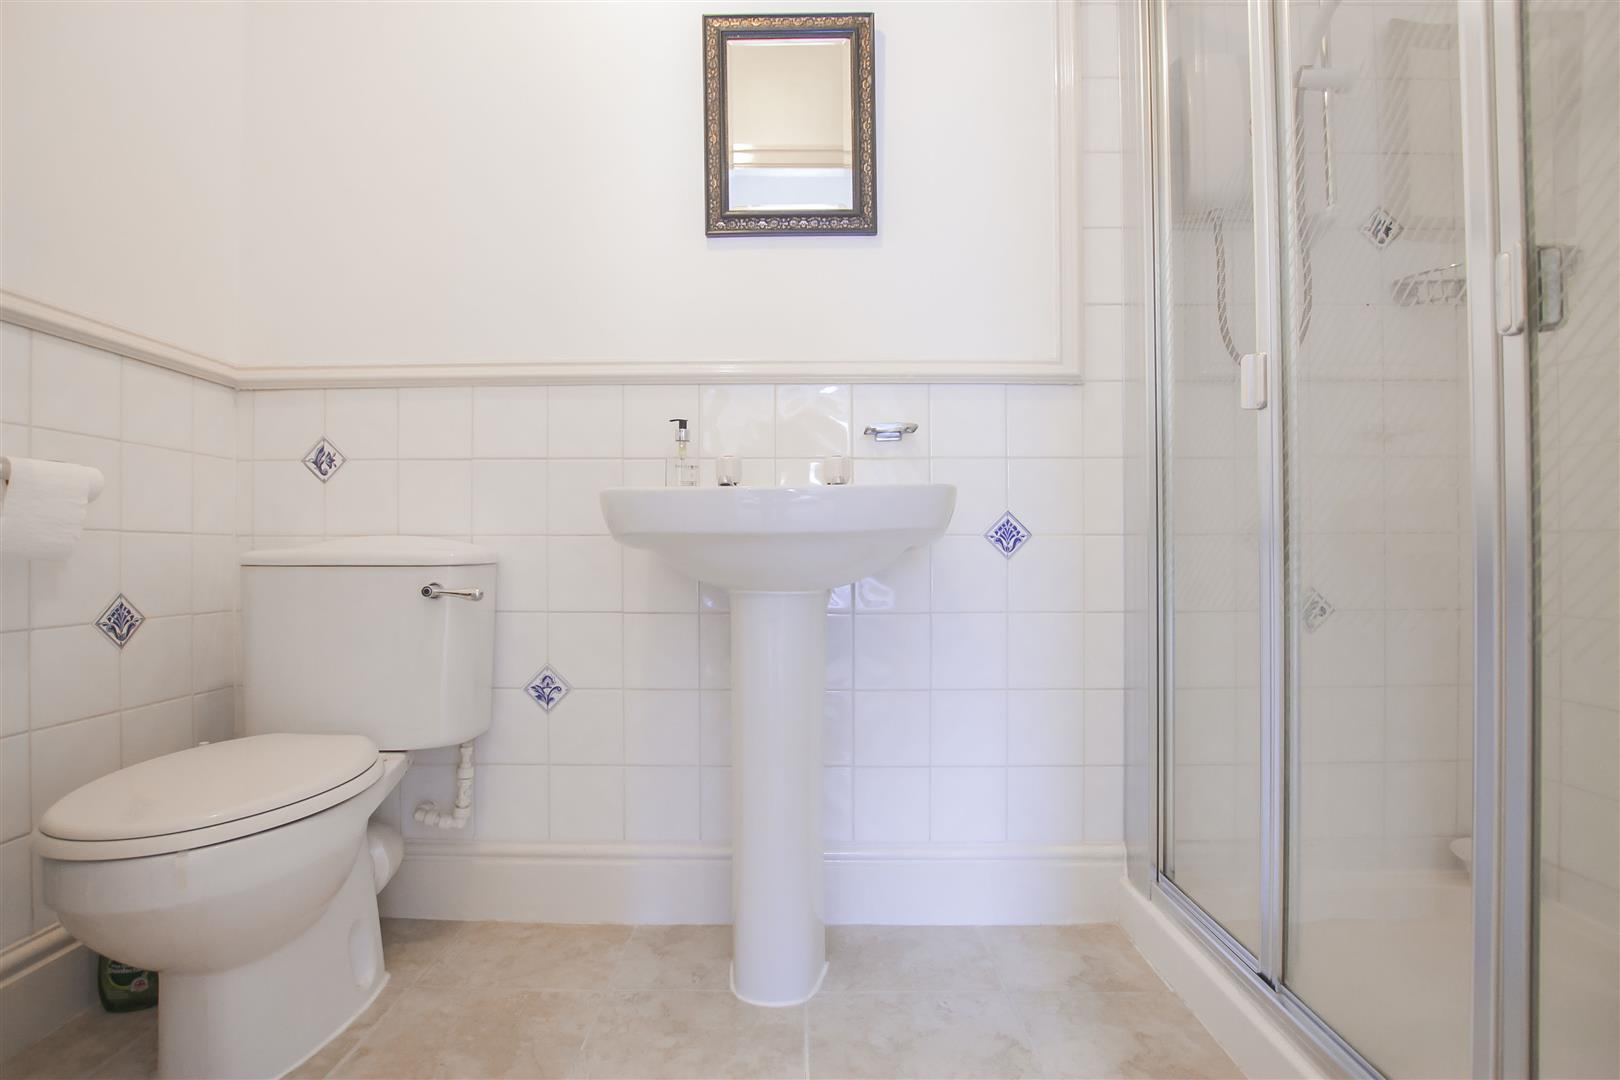 4 Bedroom Townhouse House For Sale - Image 18